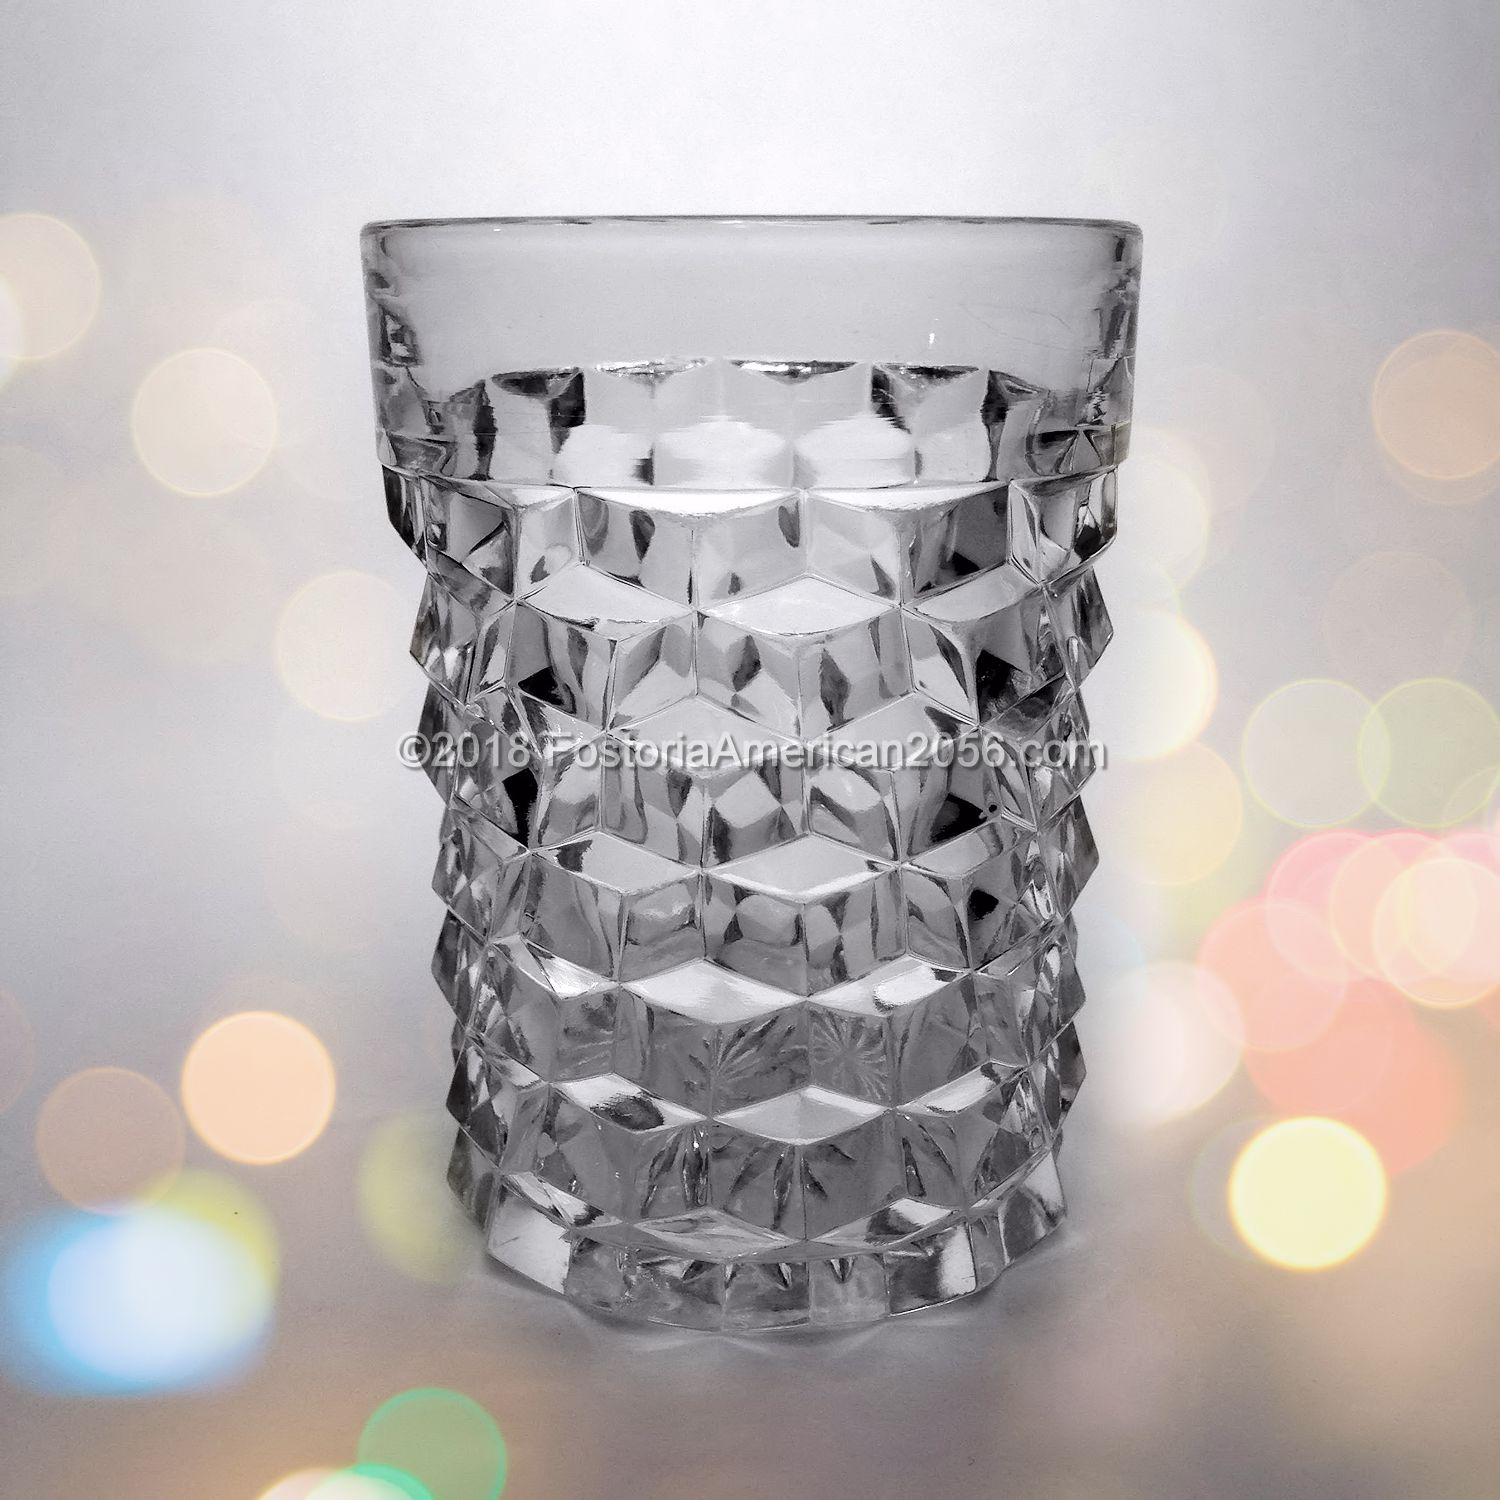 Fostoria | American | Regular Table Tumbler